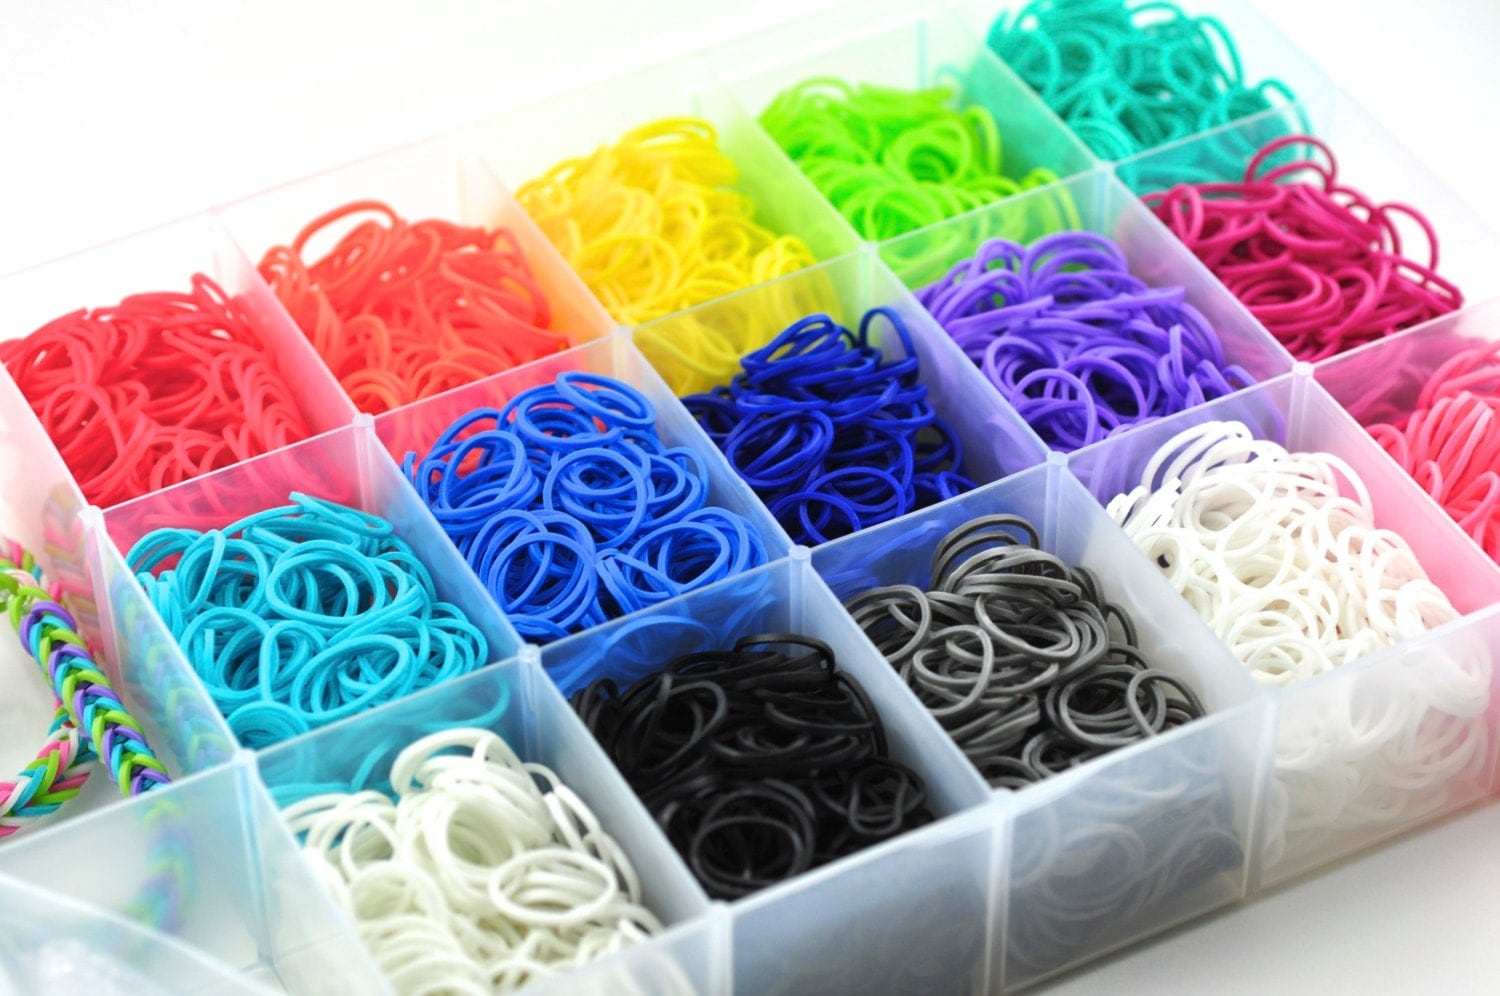 Rainbow Loom Bands 3000 Bands and Plastic Case 90 C-Clips Rainbow Loom